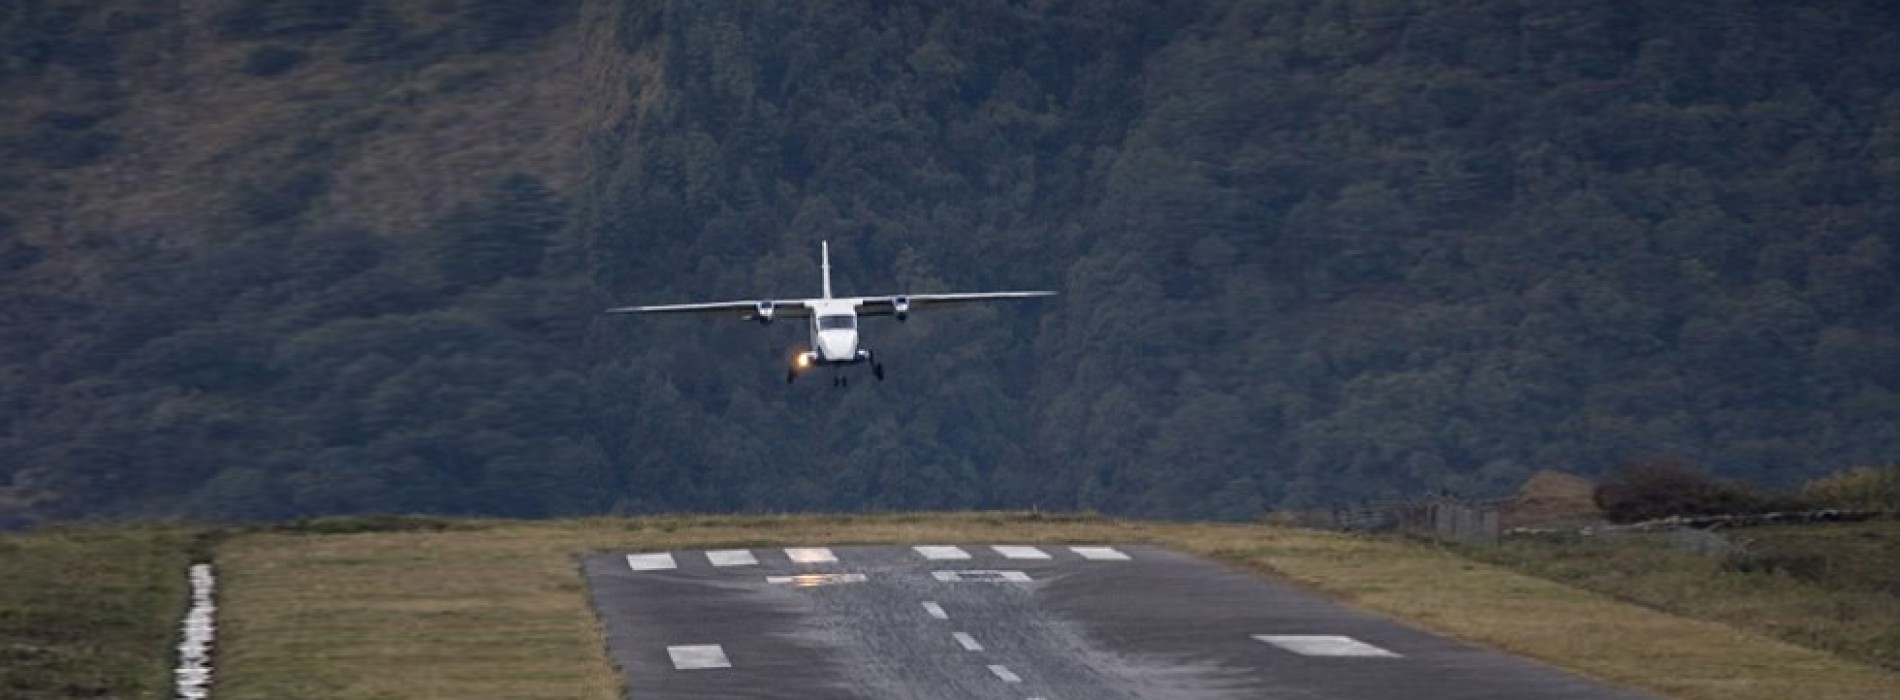 Models pose on airstrip during take off, DGCA orders inquiry says Report